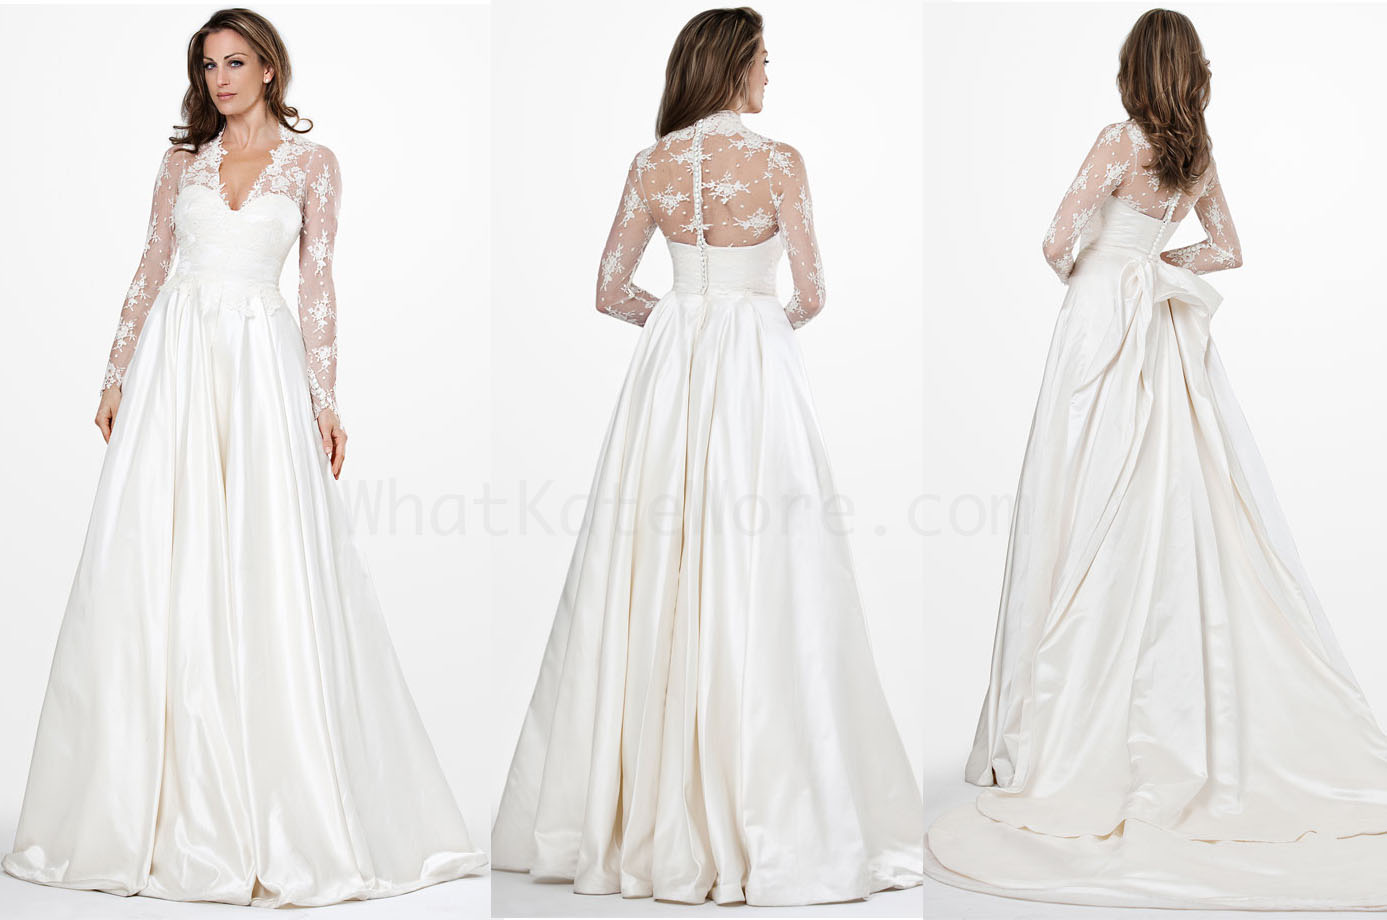 Sarah Burton Kate Middleton wedding gown Archives - What Kate Wore